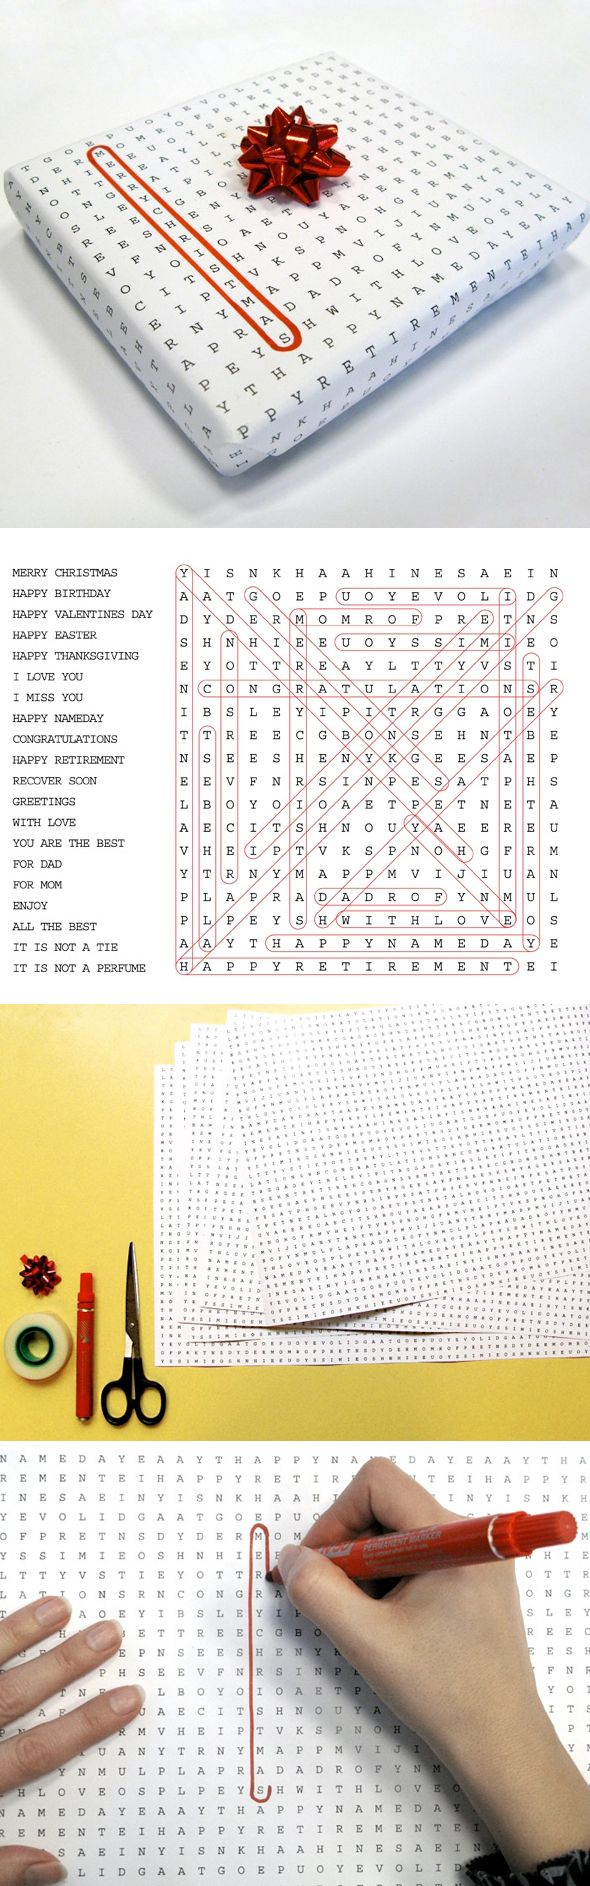 This would be perfect for boog since he loves word searches :)